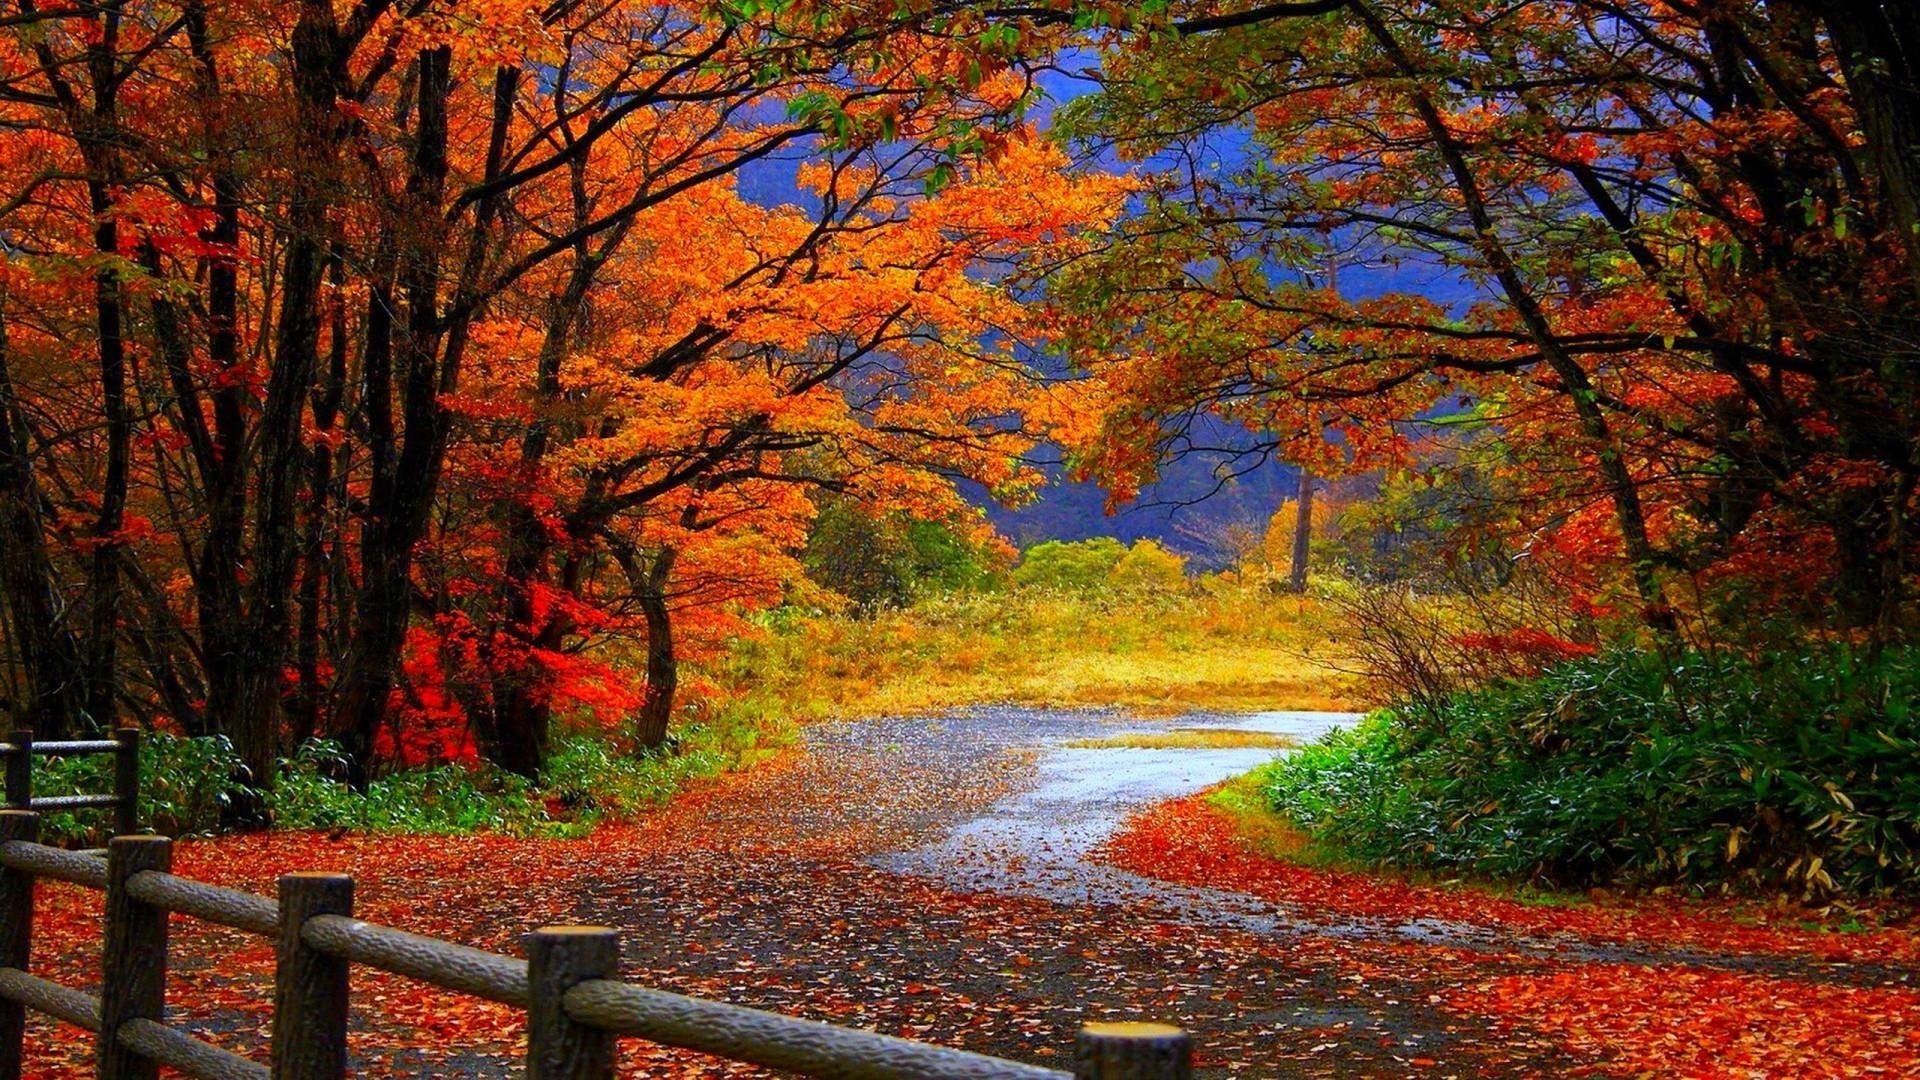 desktop wallpaper fall scenes ·①